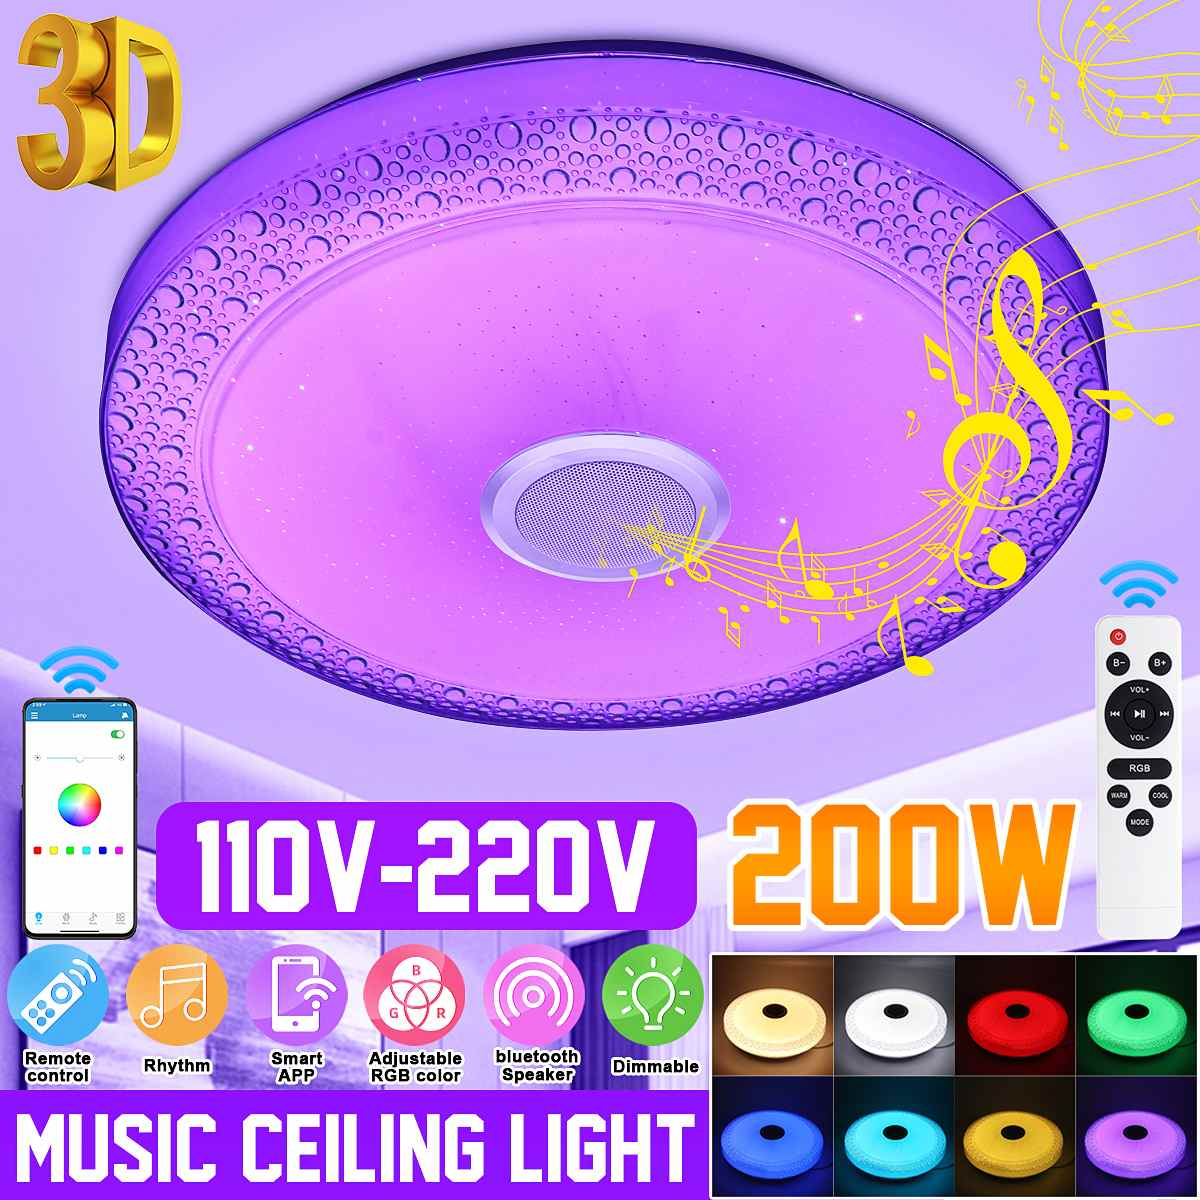 200W 3D Modern RGB LED Ceiling Lights Home lighting APP bluetooth Music Light Bedroom Lamps Smart Ceiling Lamp+Remote Control